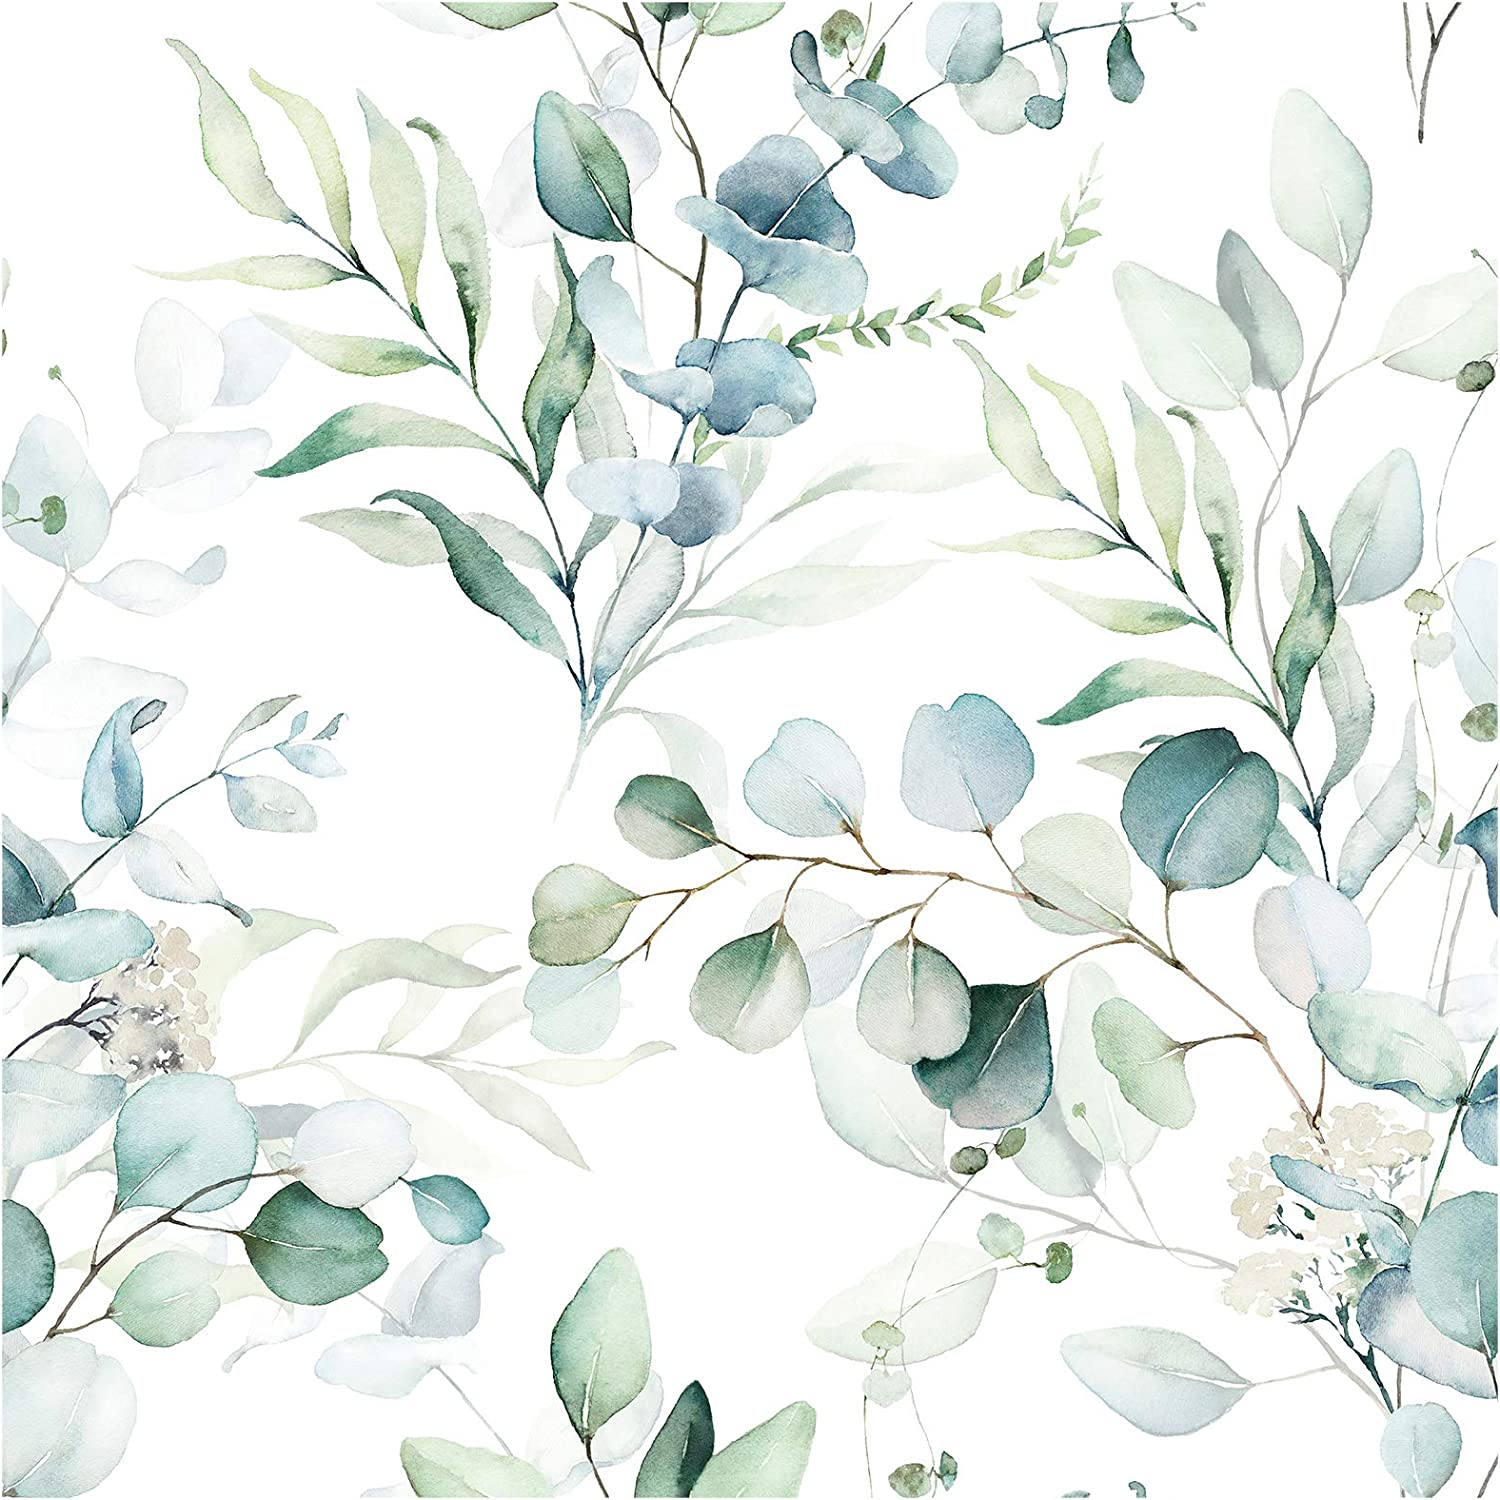 3D Yellow Green Leaves  FJFL123 Removable Wallpaper Self Adhesive Wallpaper Extra Large Peel /& Stick Wallpaper Wallpaper Mural AJ WALLPAPERS